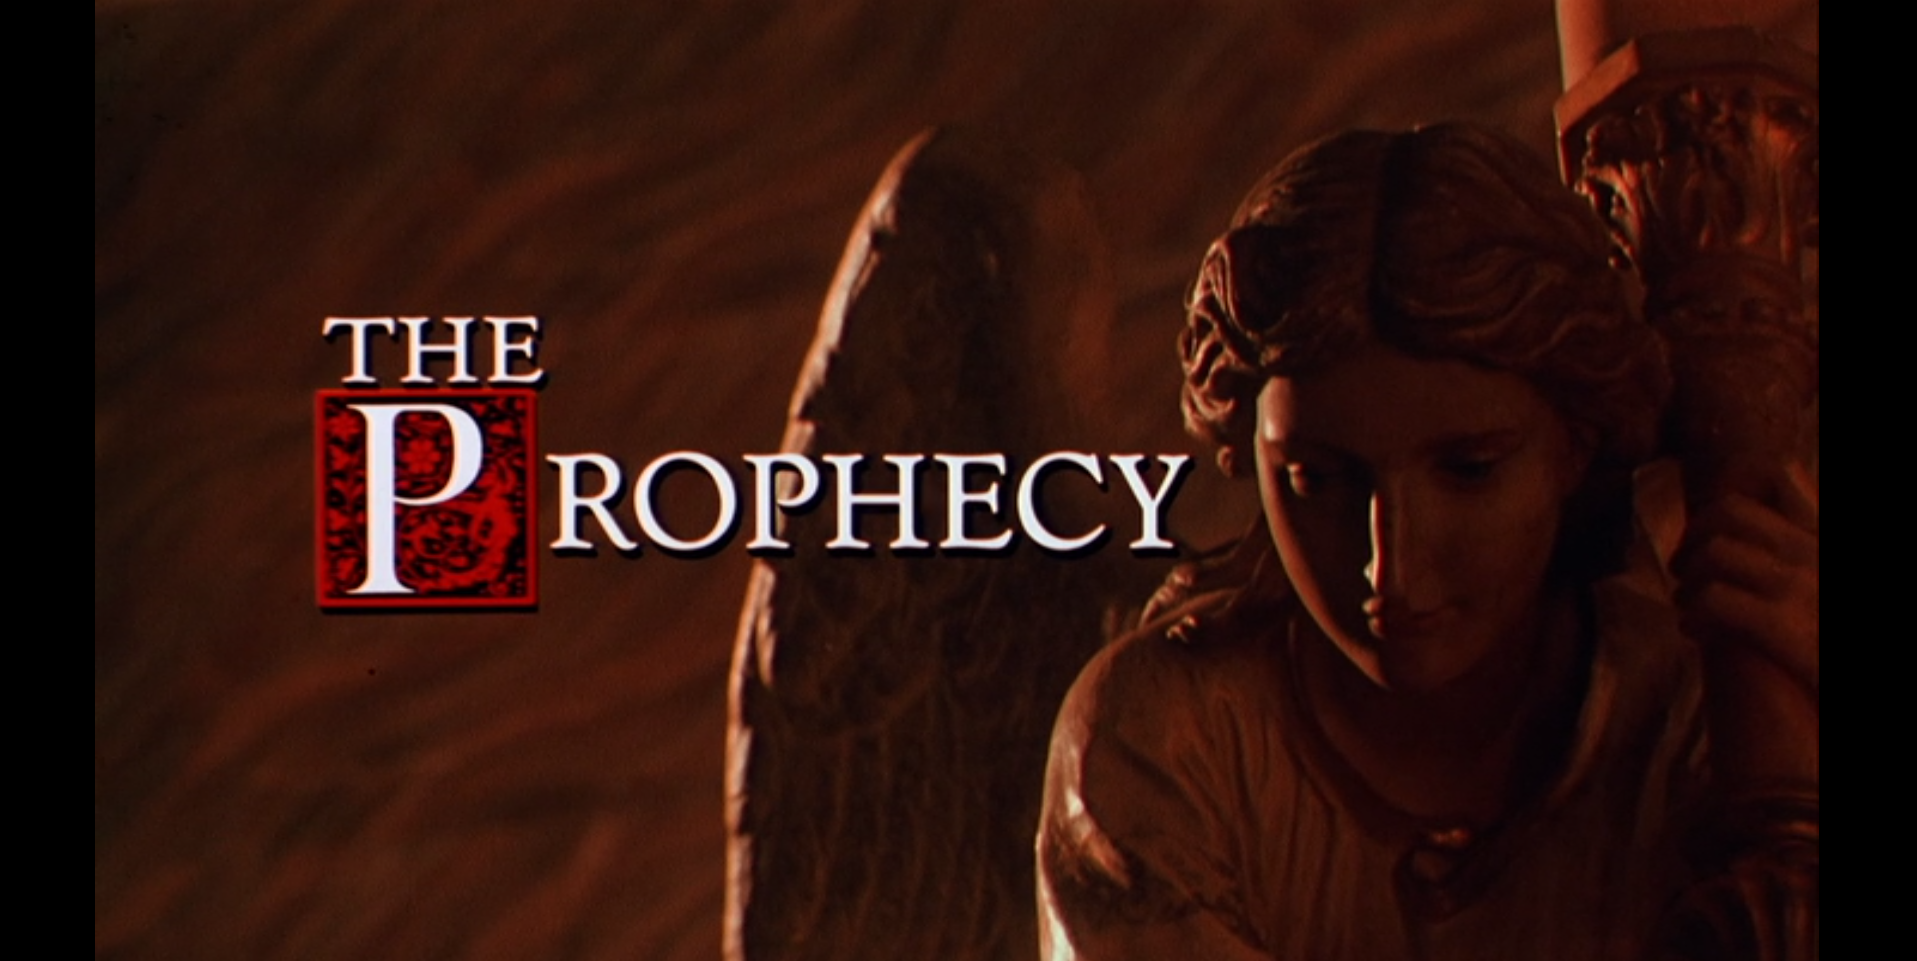 Eddie S 31 Days Of Halloween 2015 Day Five The Prophecy